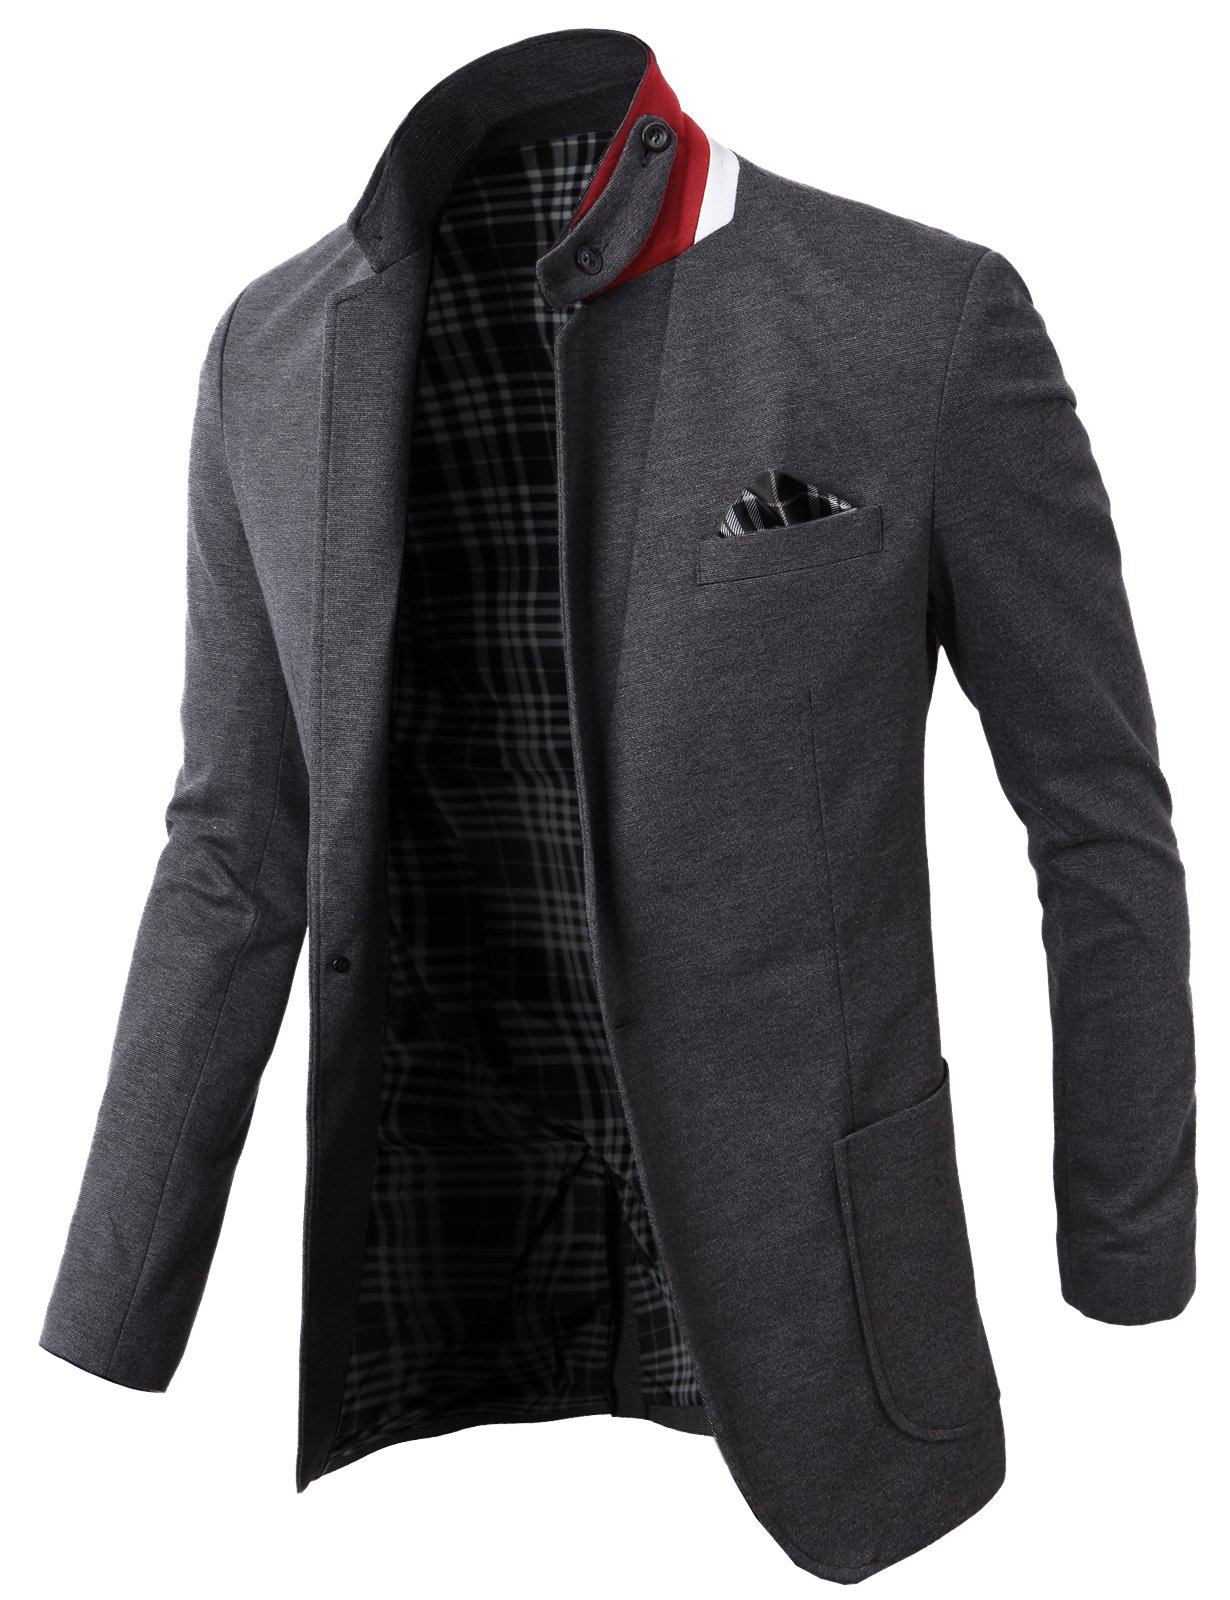 H2H Mens Hipster Slim Fit Suits Casual One Button Flap Pockets Solid PU Leather Blazer Jacket GRAY US Large/Asia 2XL (KMOBL01)